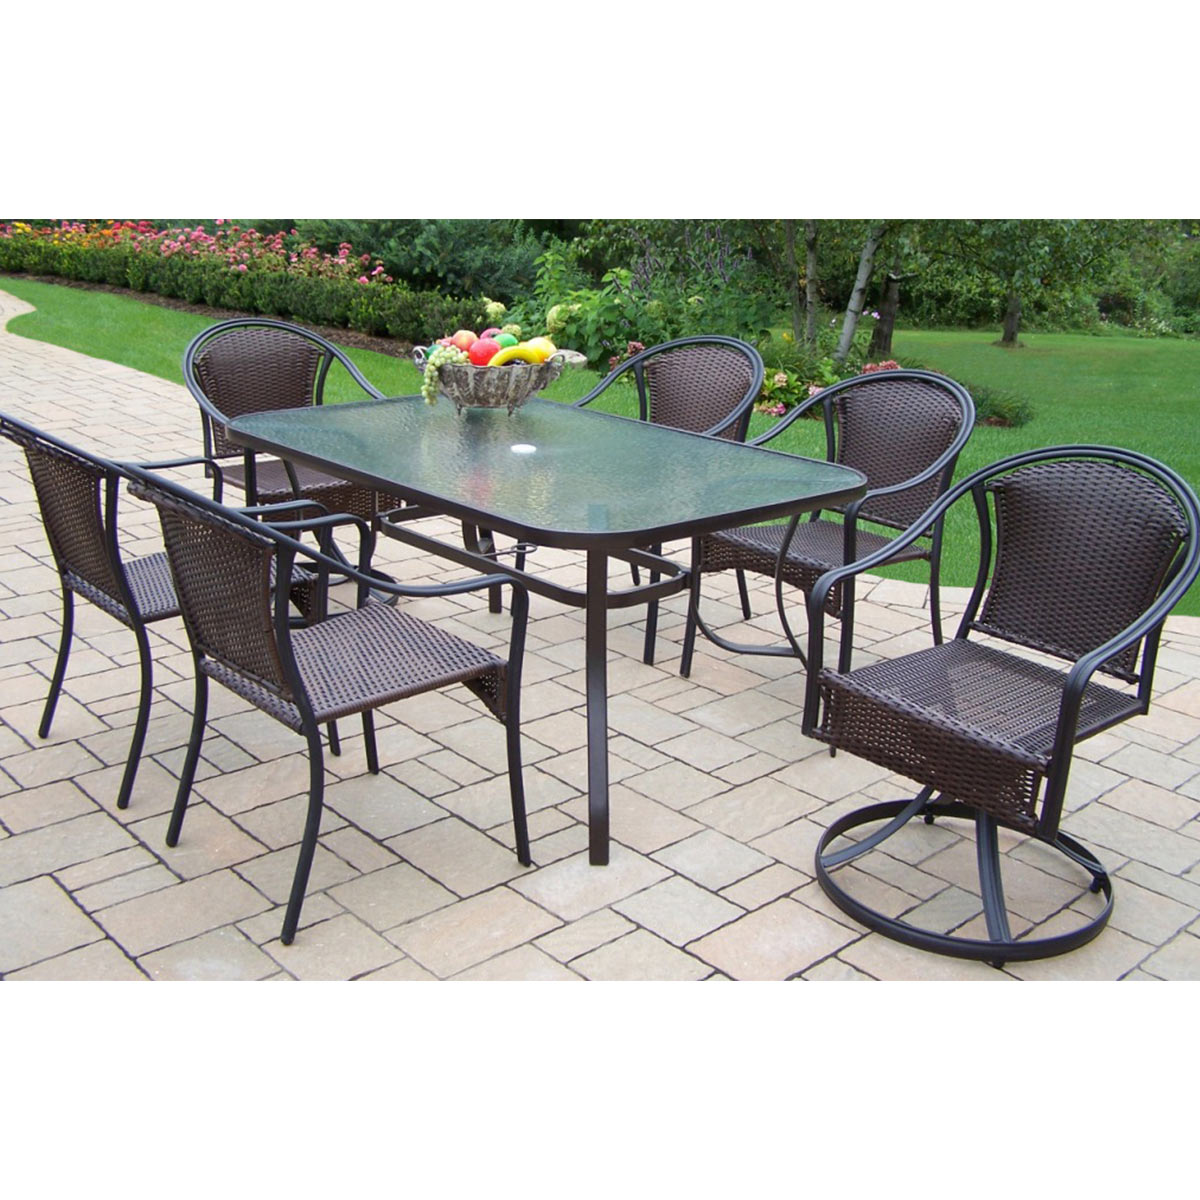 Oakland Living Tuscany 7 Piece Dining Set With 60 X 36 Tempered Glass Top Table 2 Swivel Chairs